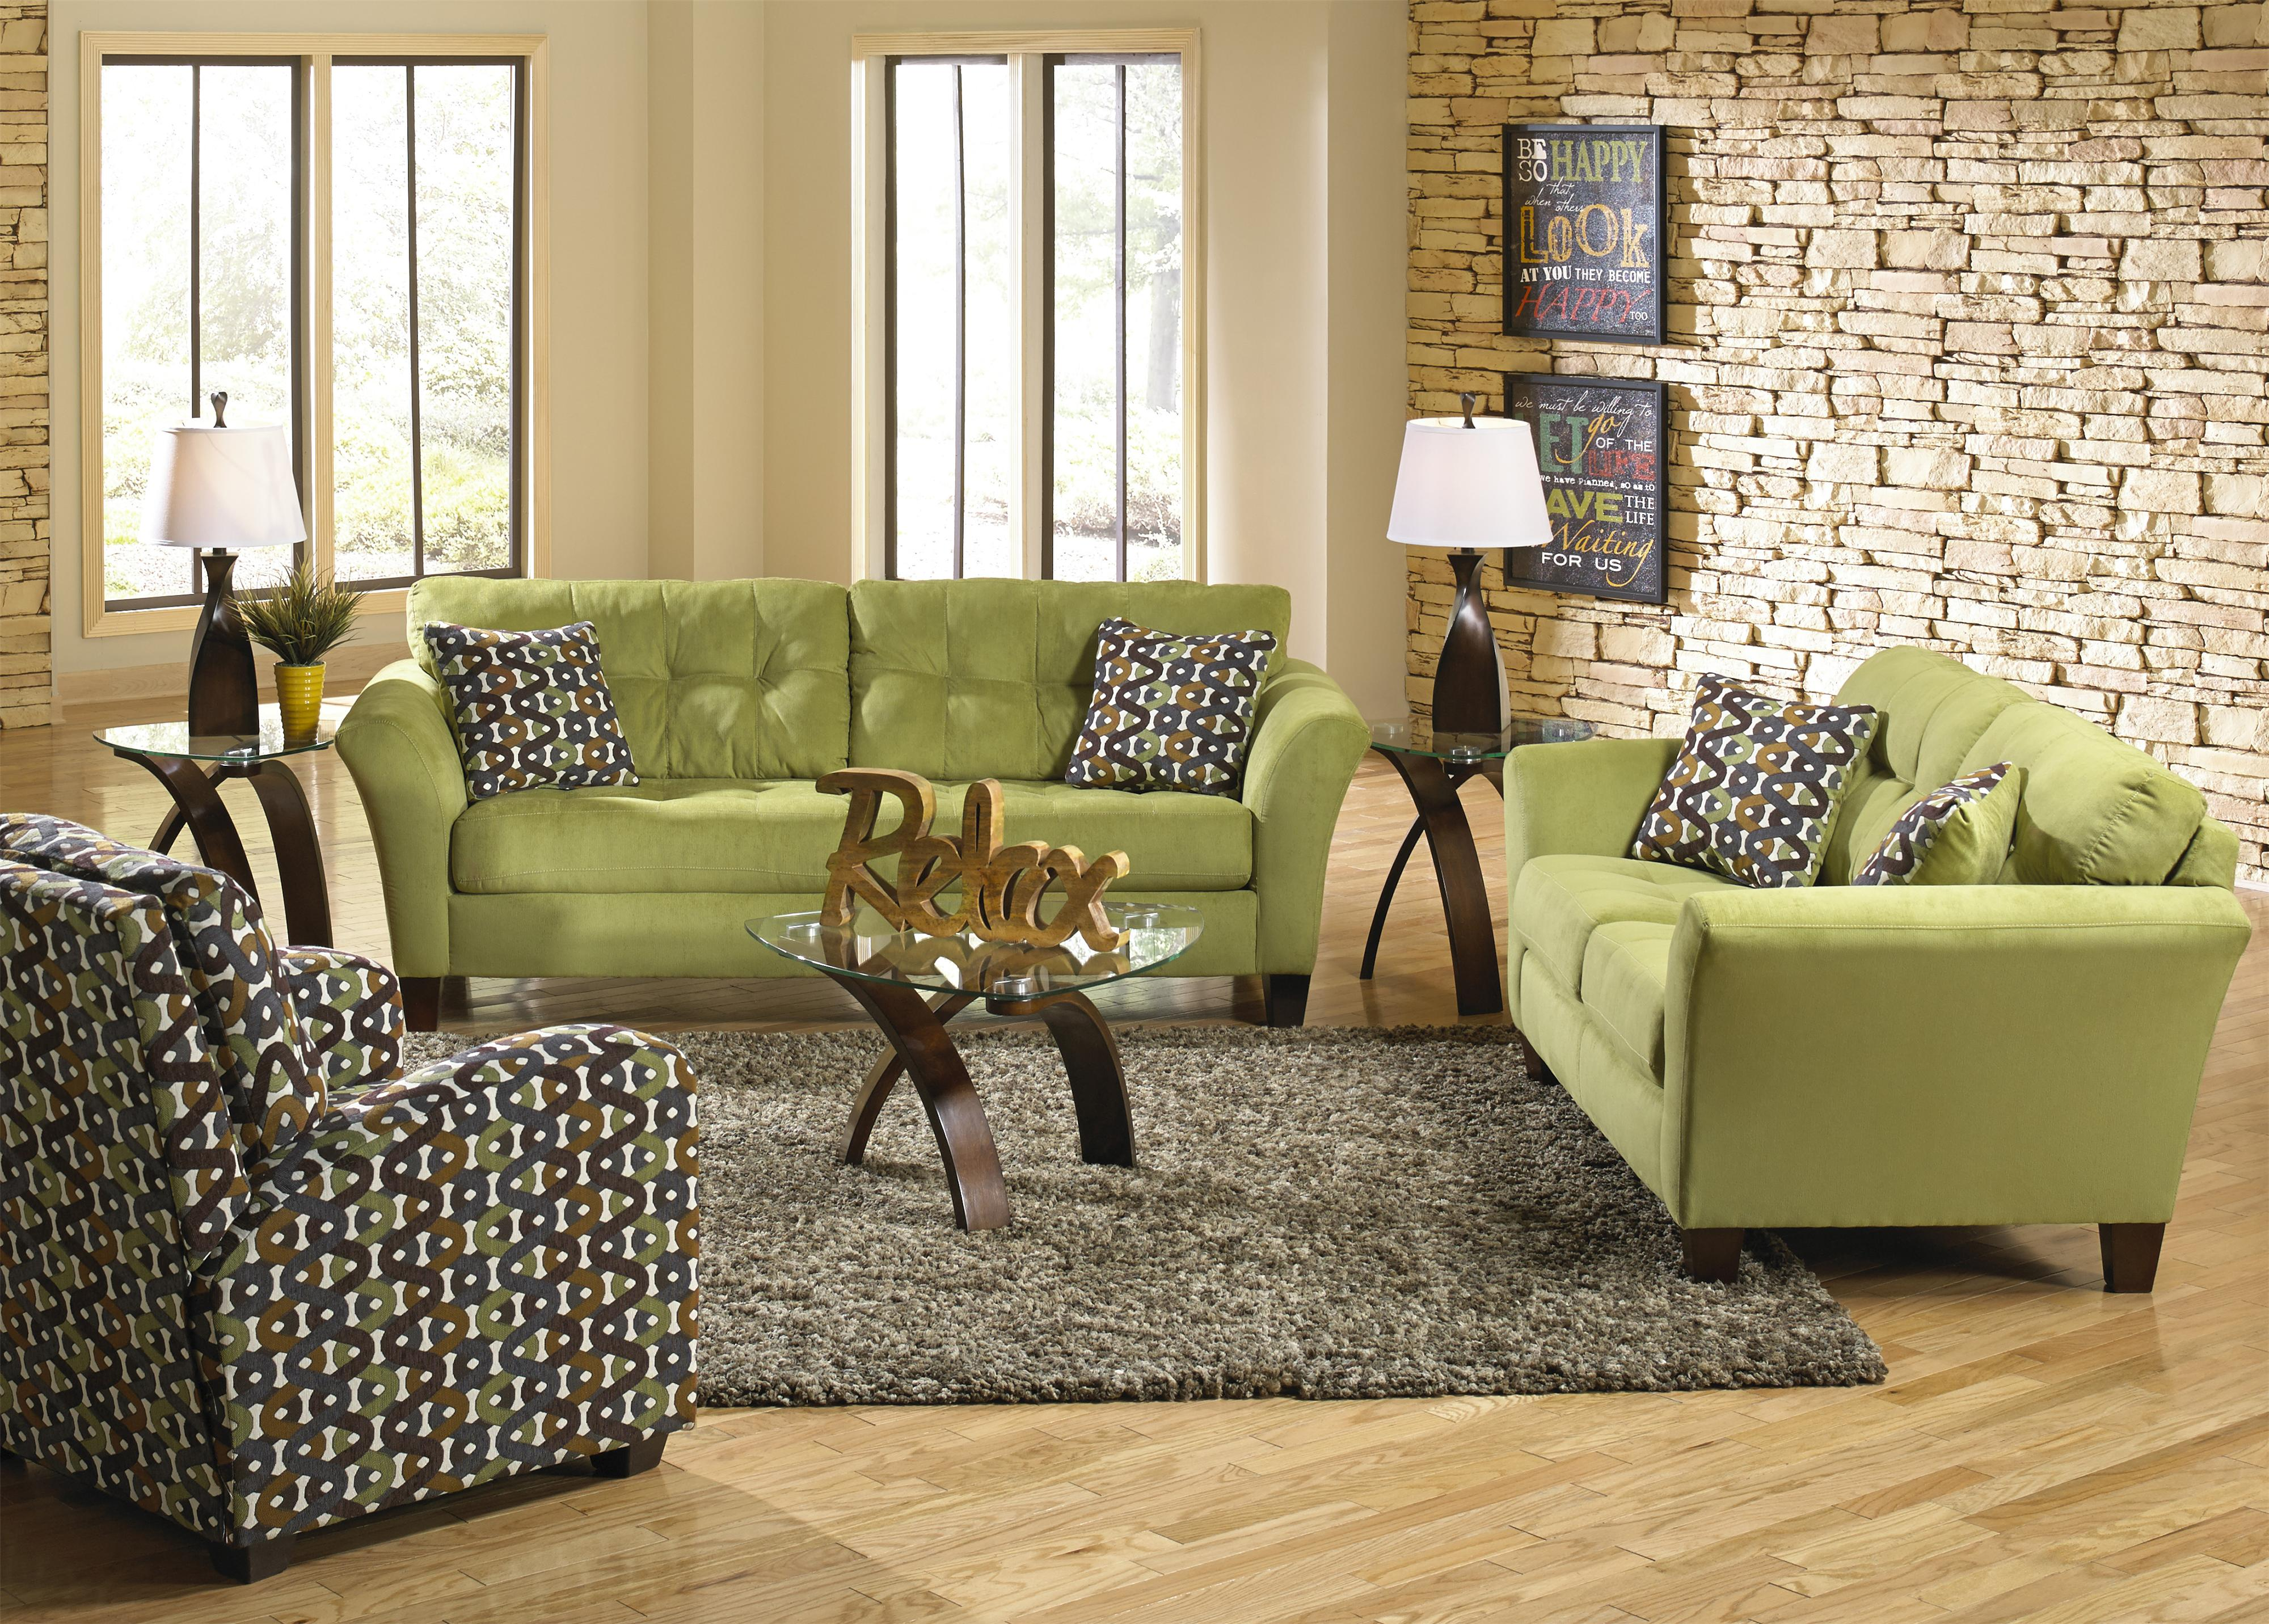 Furniture Warehouse Fayetteville Nc | North Carolina Furniture Stores | Bullard Furniture